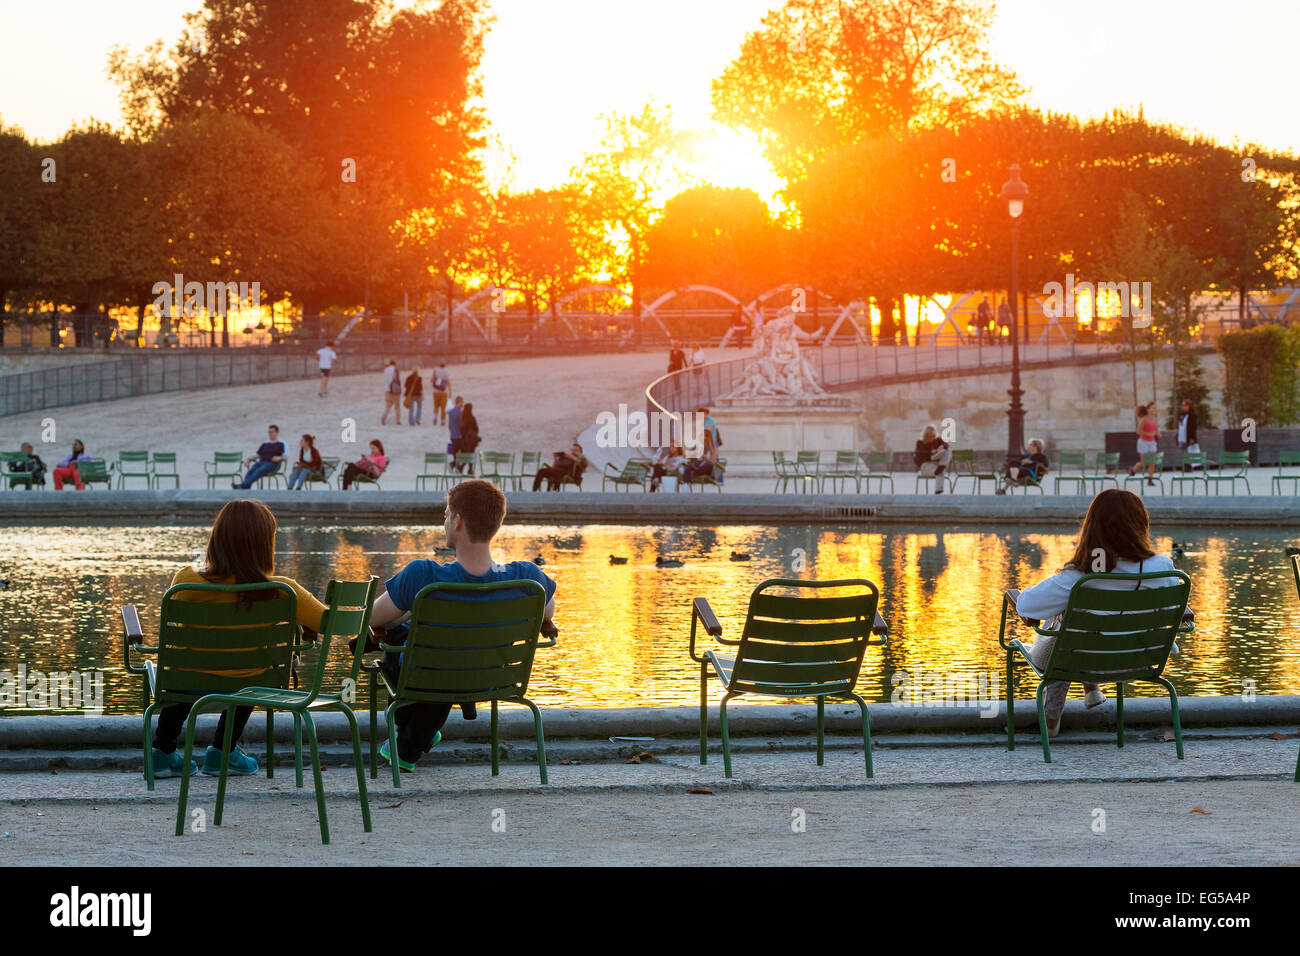 Paris, People relaxing in jardin des tuileries - Stock Image